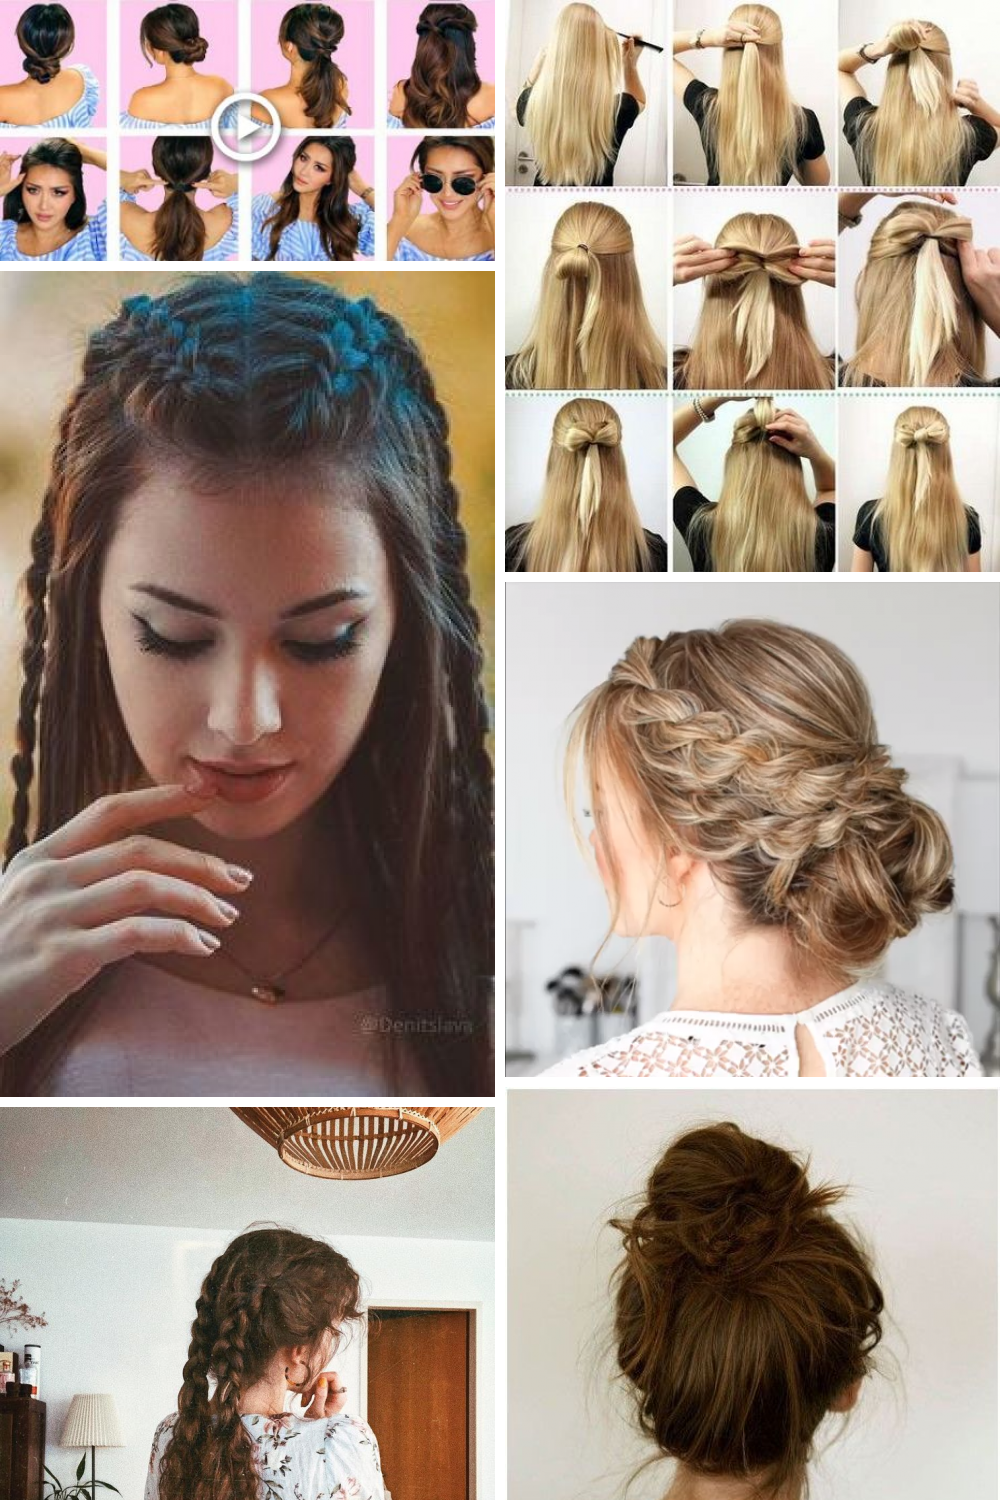 28 Cute Everyday Hairstyle Ideas For You Hair Styles Cute Everyday Hairstyles Everyday Hairstyles